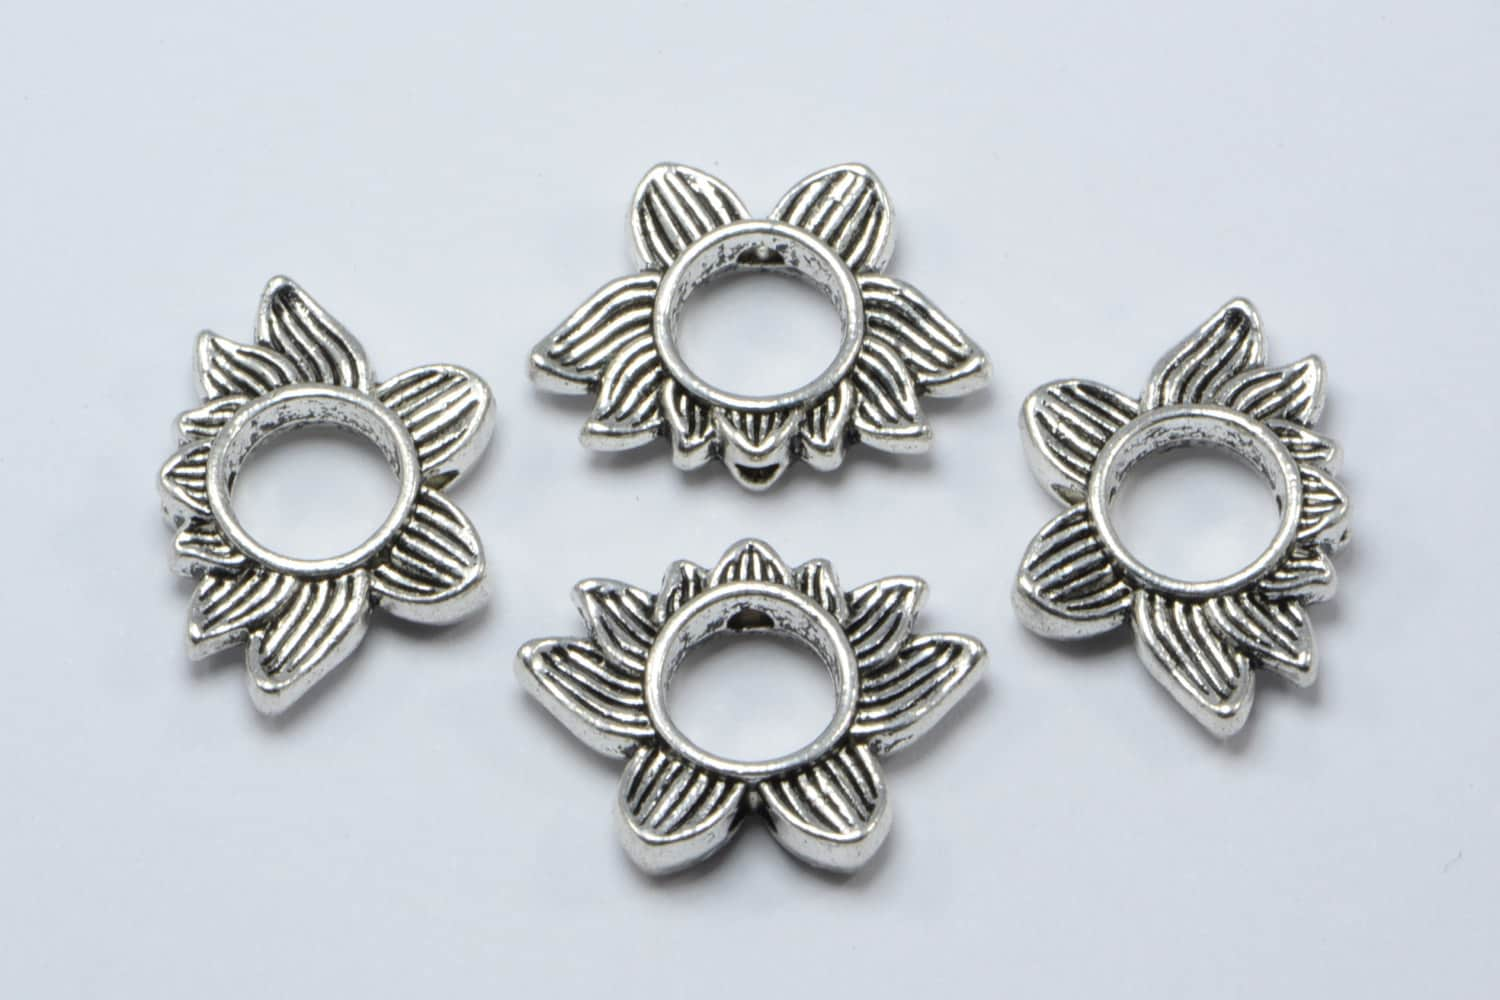 30pcs Lotus Flower Beads With Inner Slot For Beads In Antique